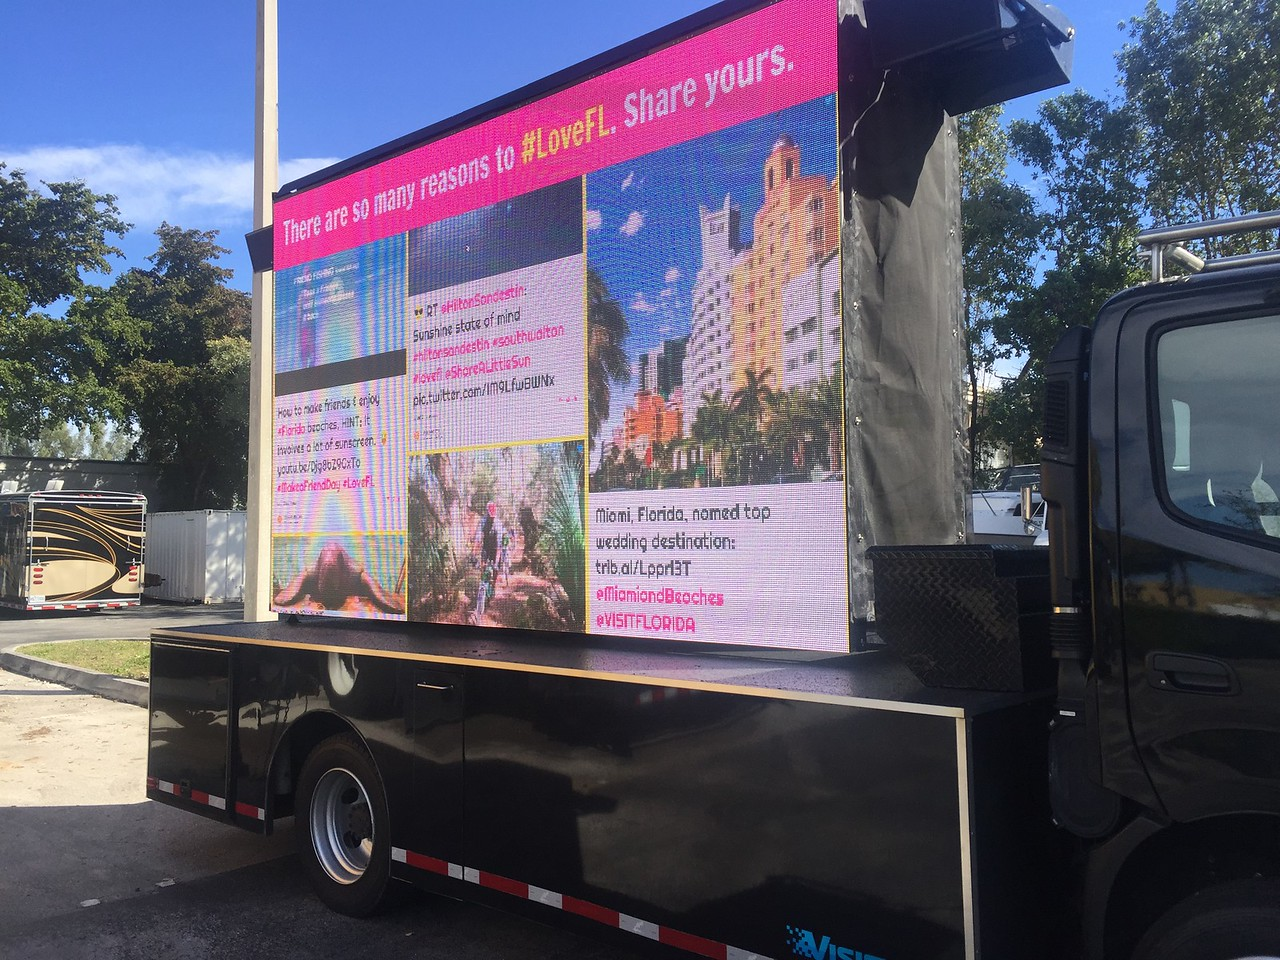 #LOVEFL Visit Florida Outdoor Mobile Screen Display sooh